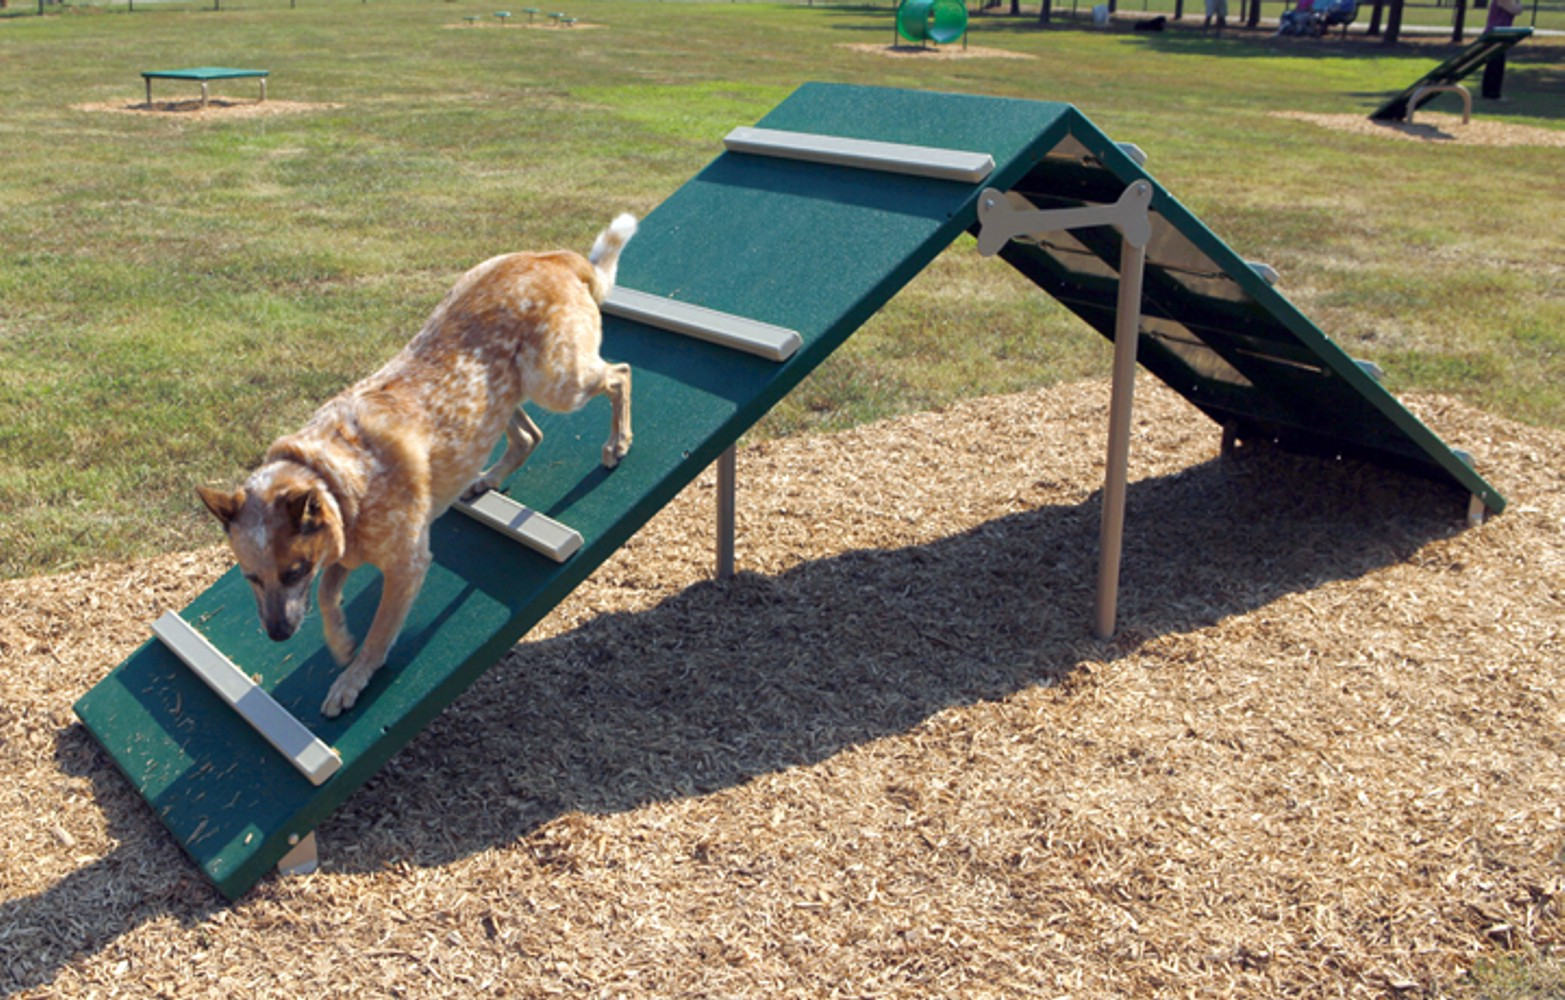 King of the Hill - Dog Park Equipment - American Parks Company